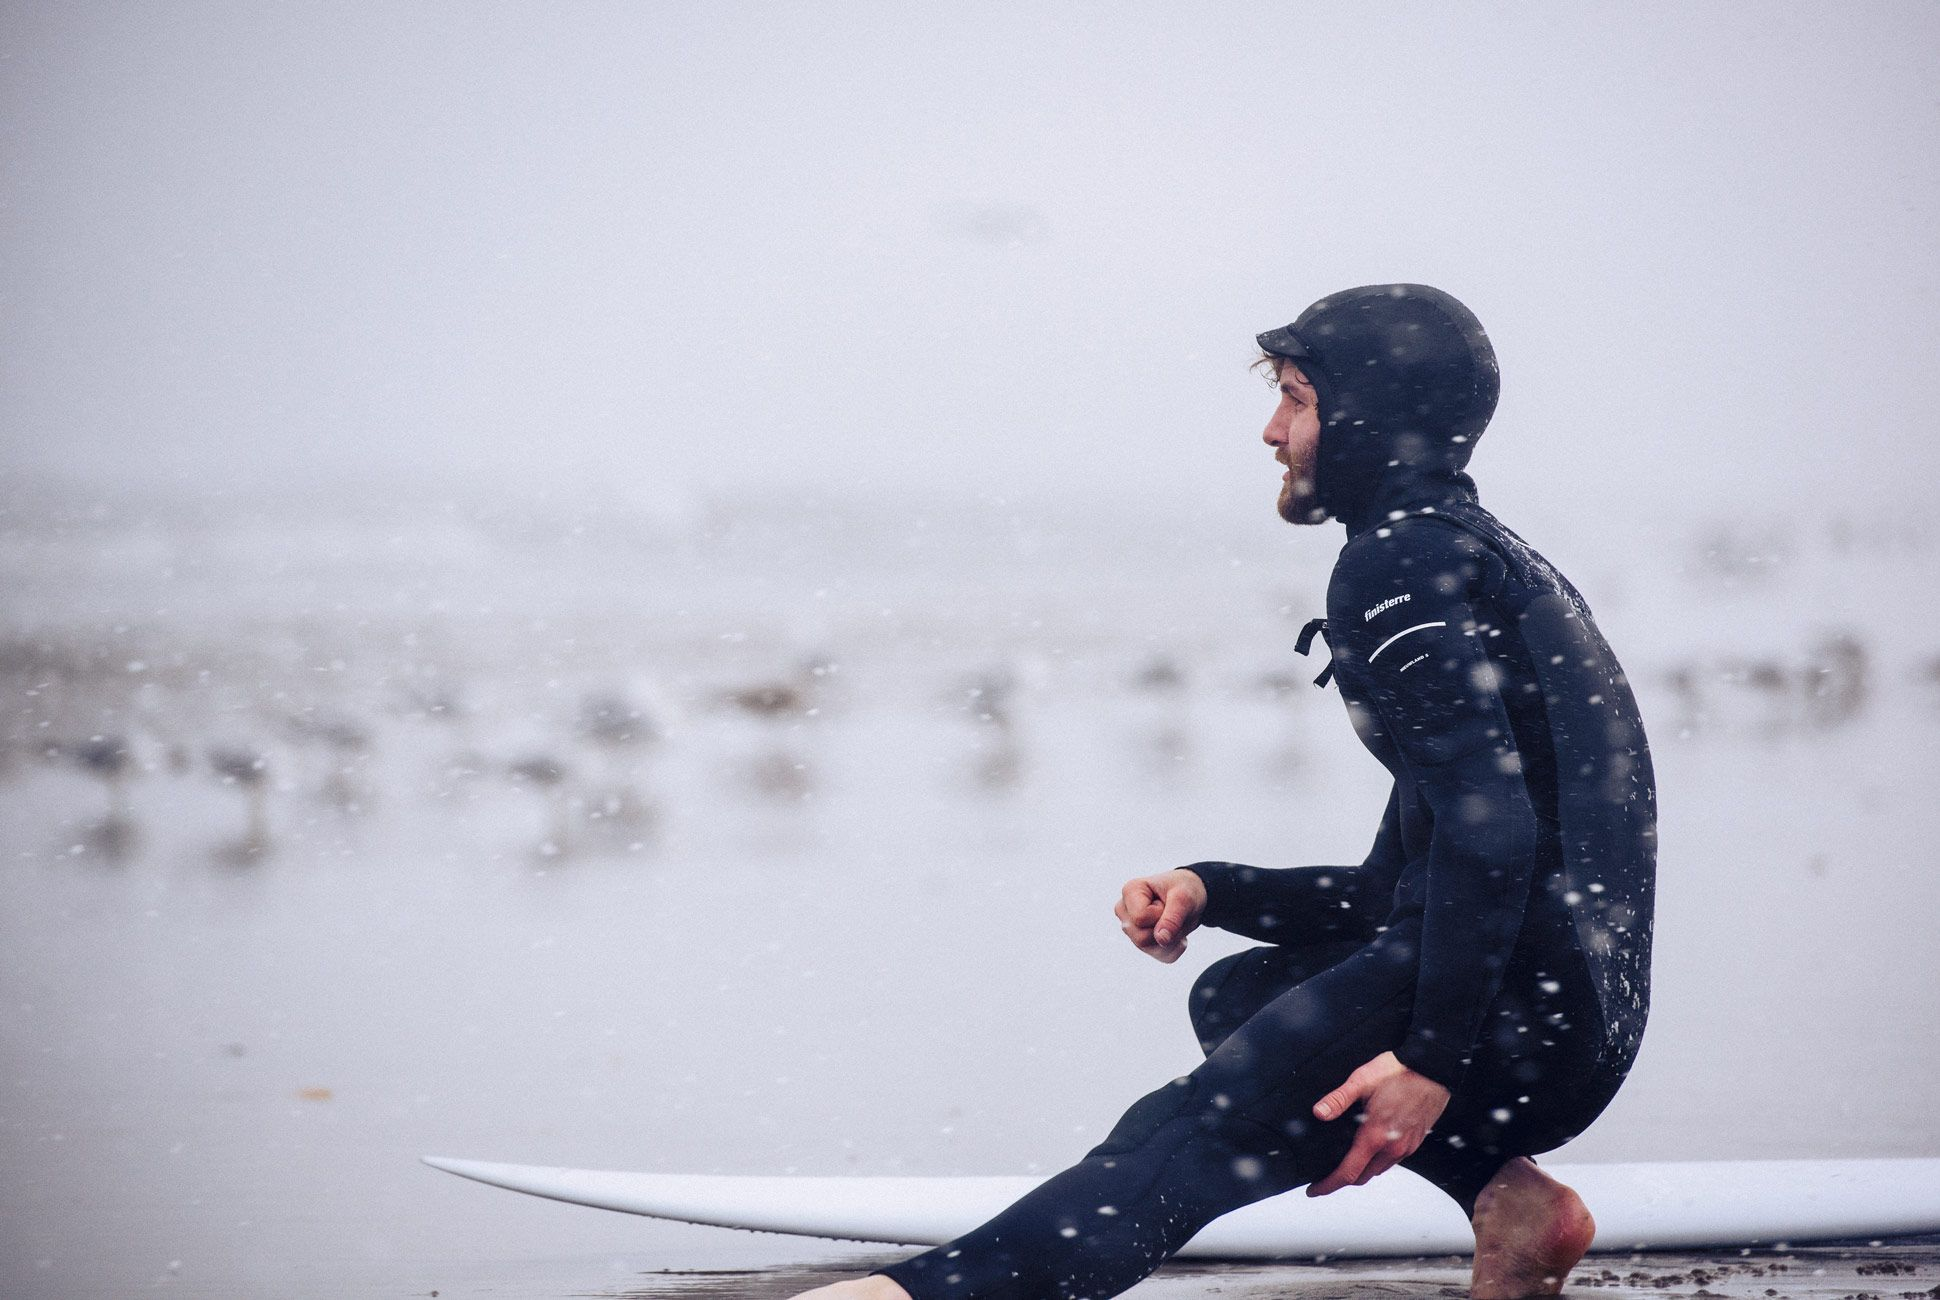 Winter-Surf-Suit-MF-Gear-Patrol-Slide-4